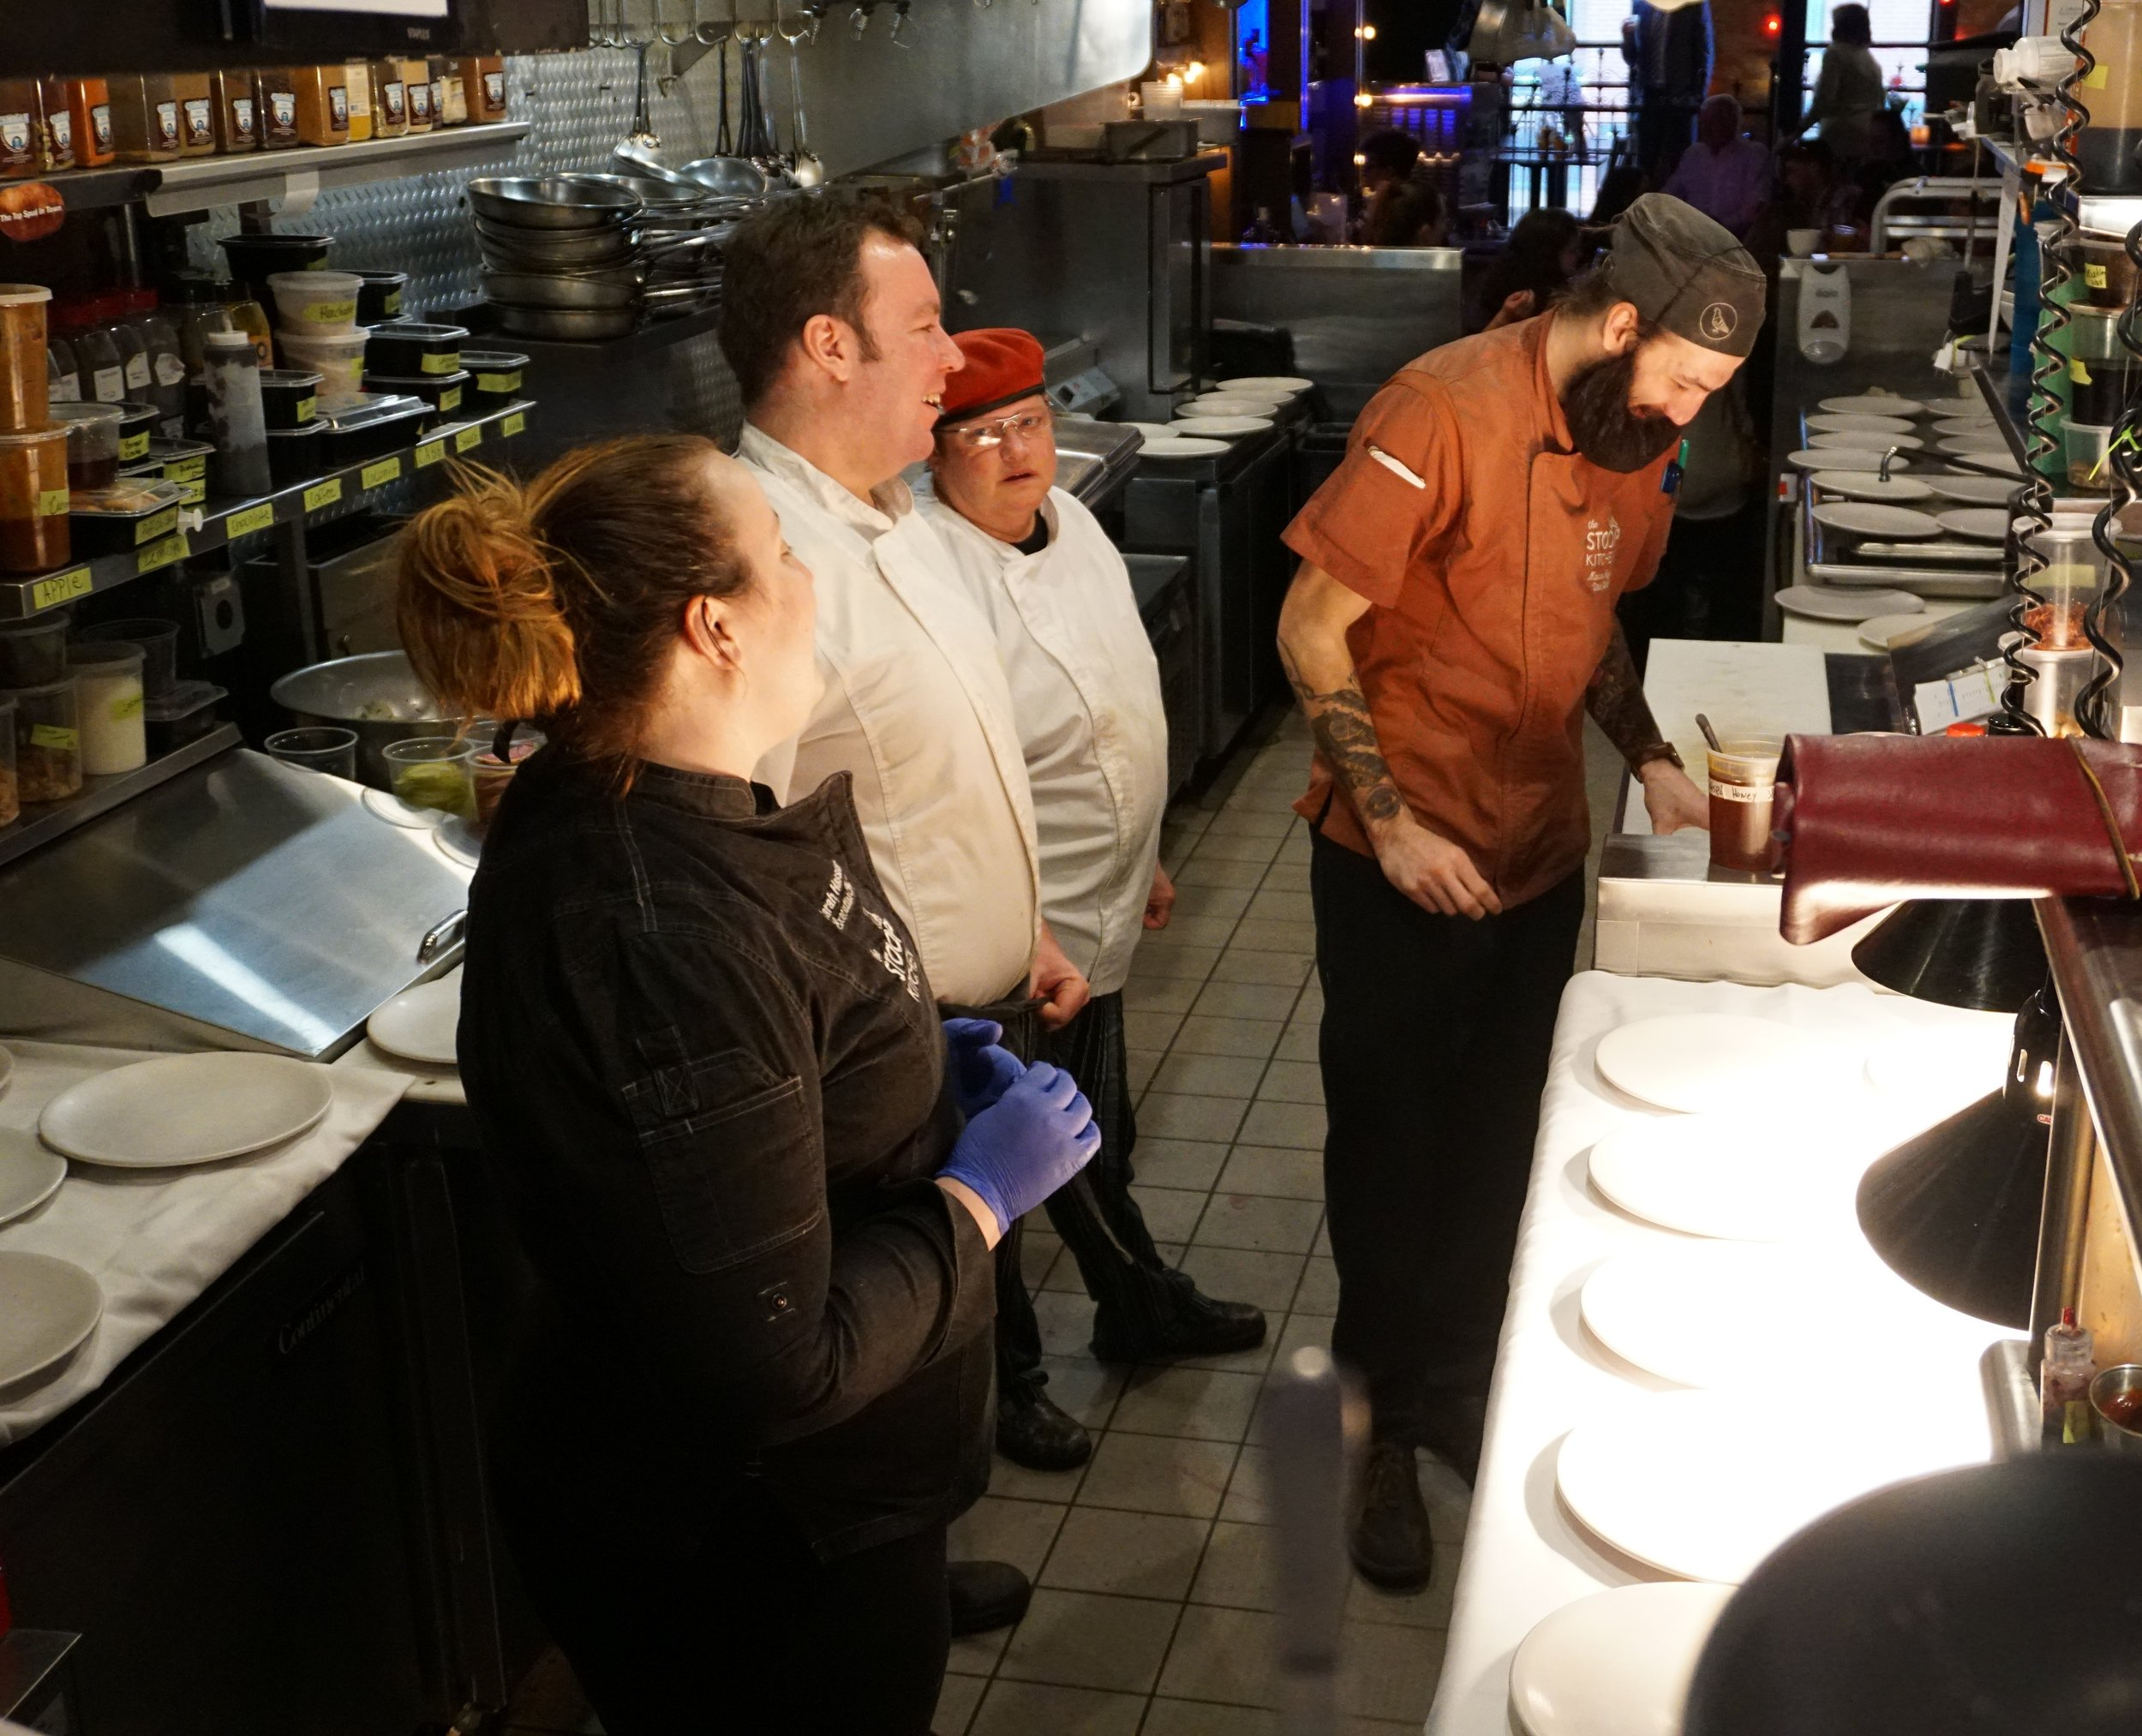 Sarah Hassler and The Stoop Kitchen Team